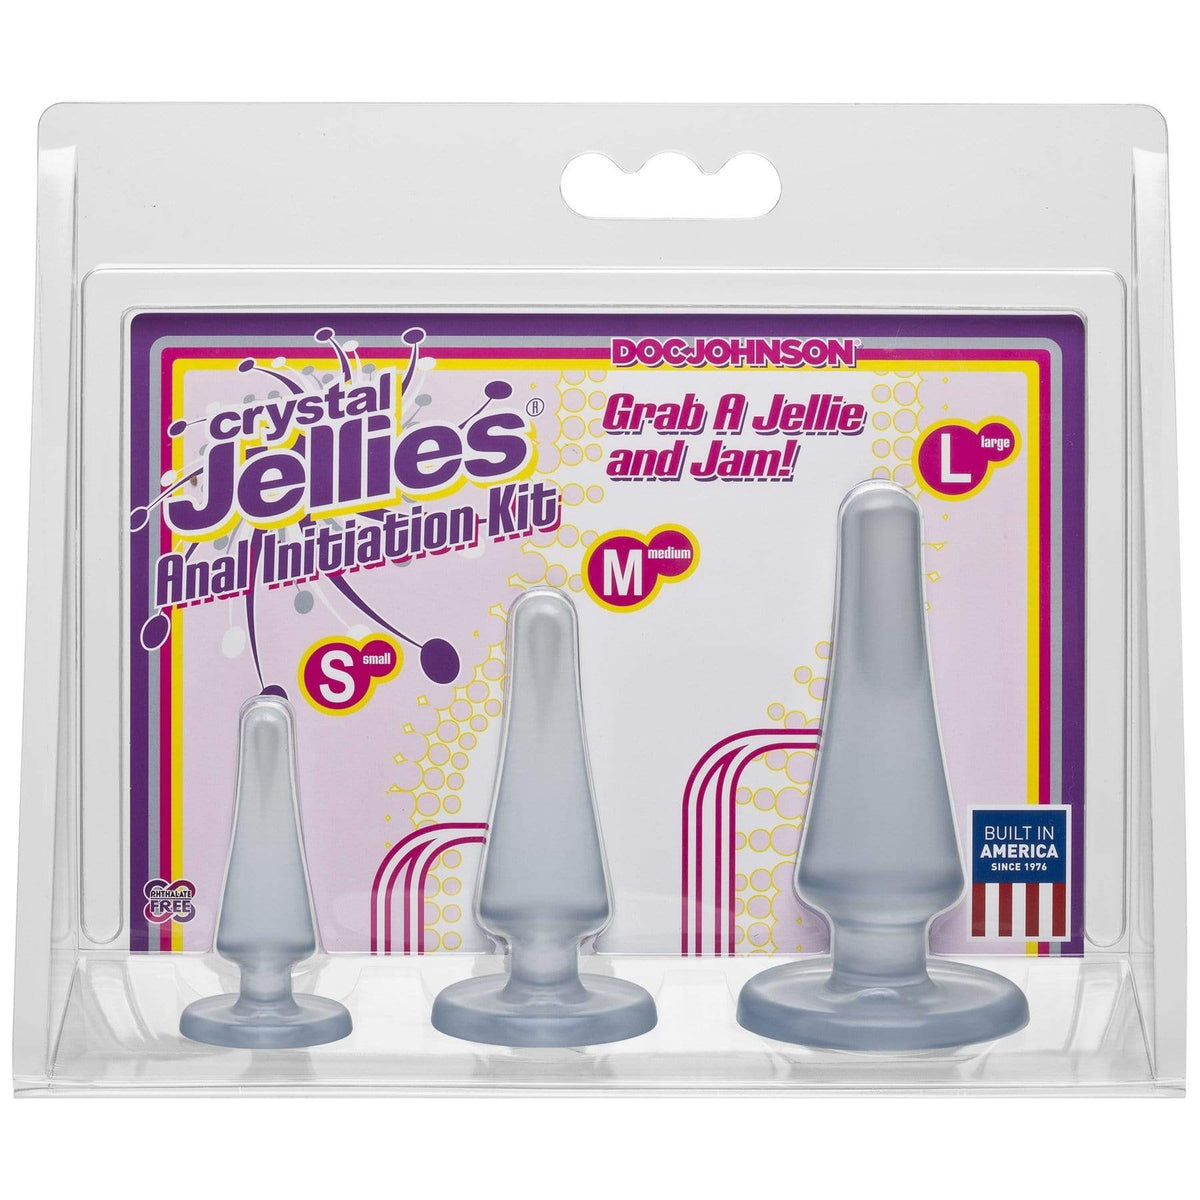 crystal jellies anal initiation kit clear